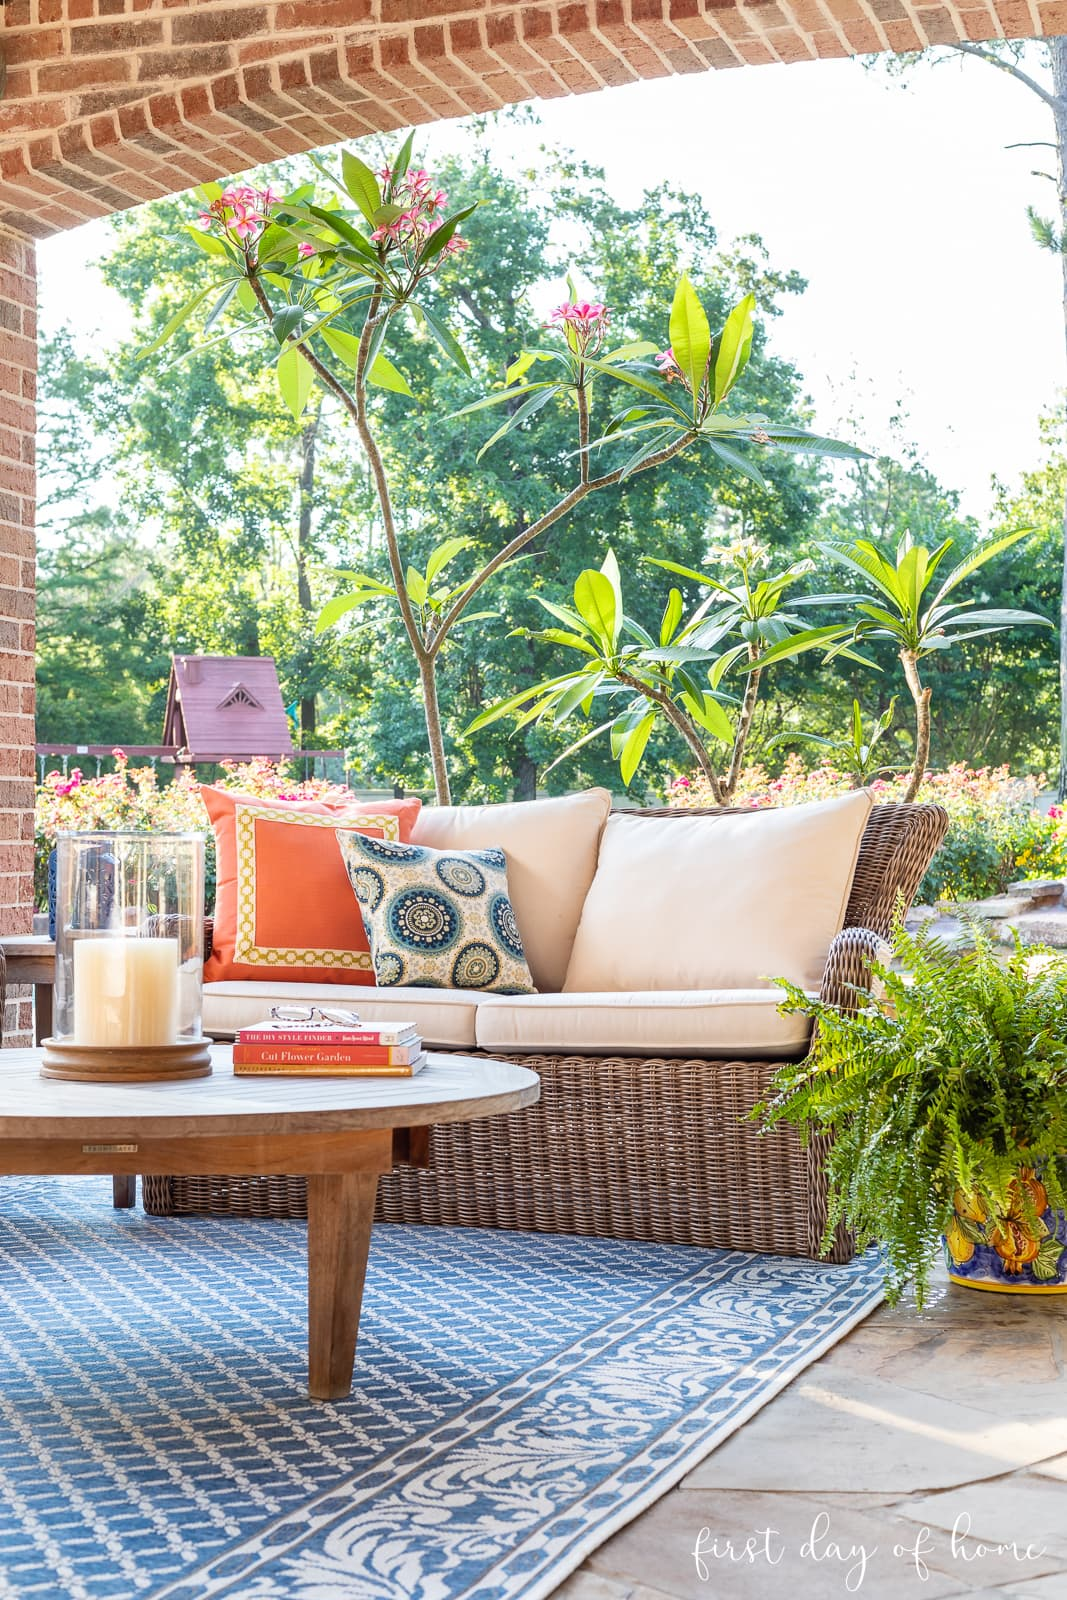 Back patio decor with settee and colorful throw pillows with area rug and potted plants